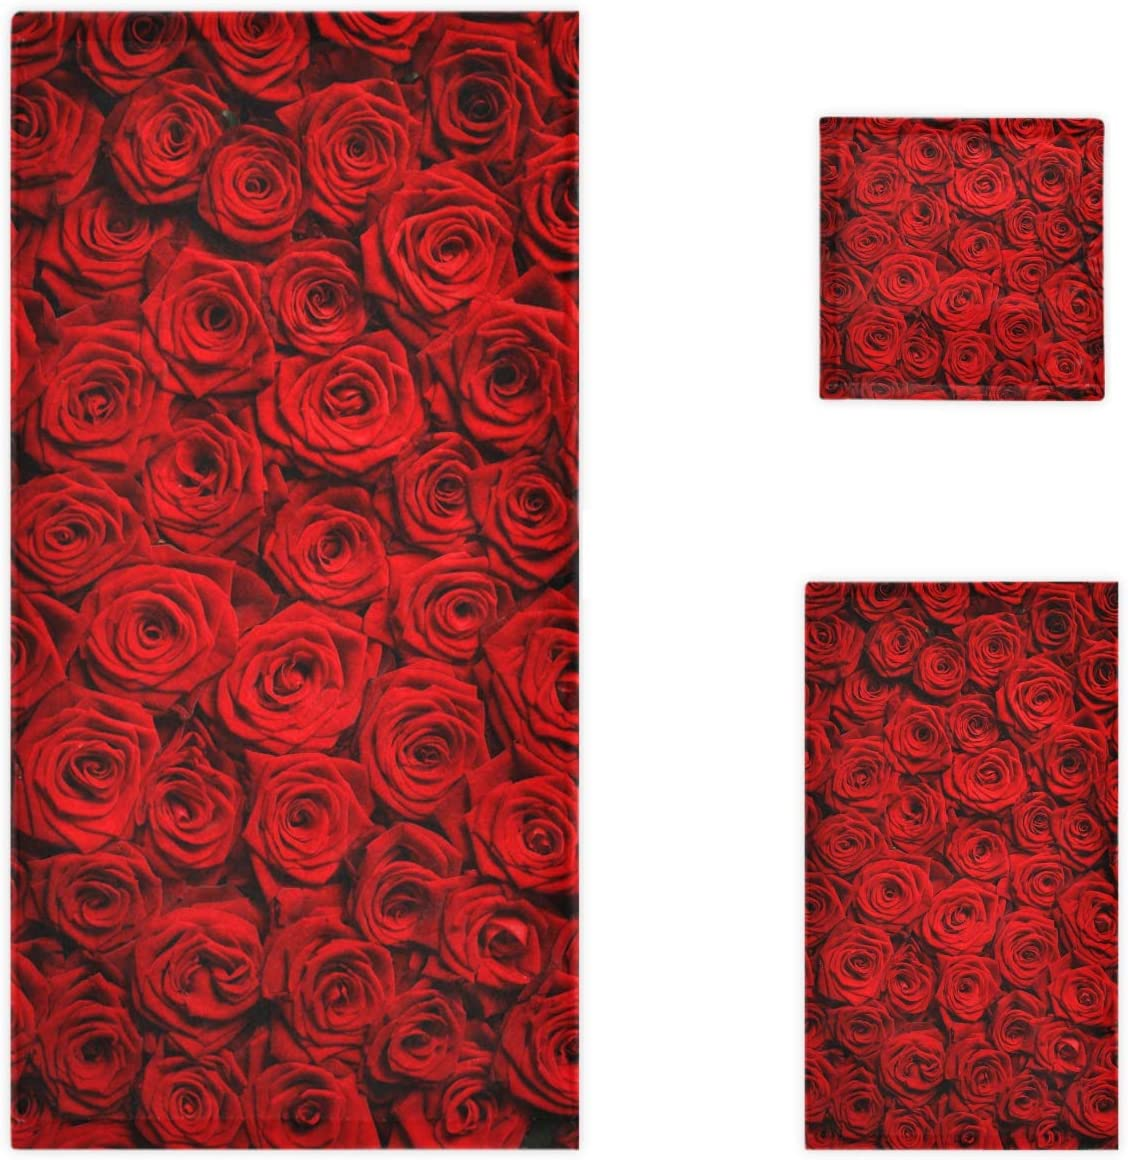 Naanle 3D Beautiful Natural Industry No. 1 Red Decorati Luxury Soft Ranking TOP8 Print Roses